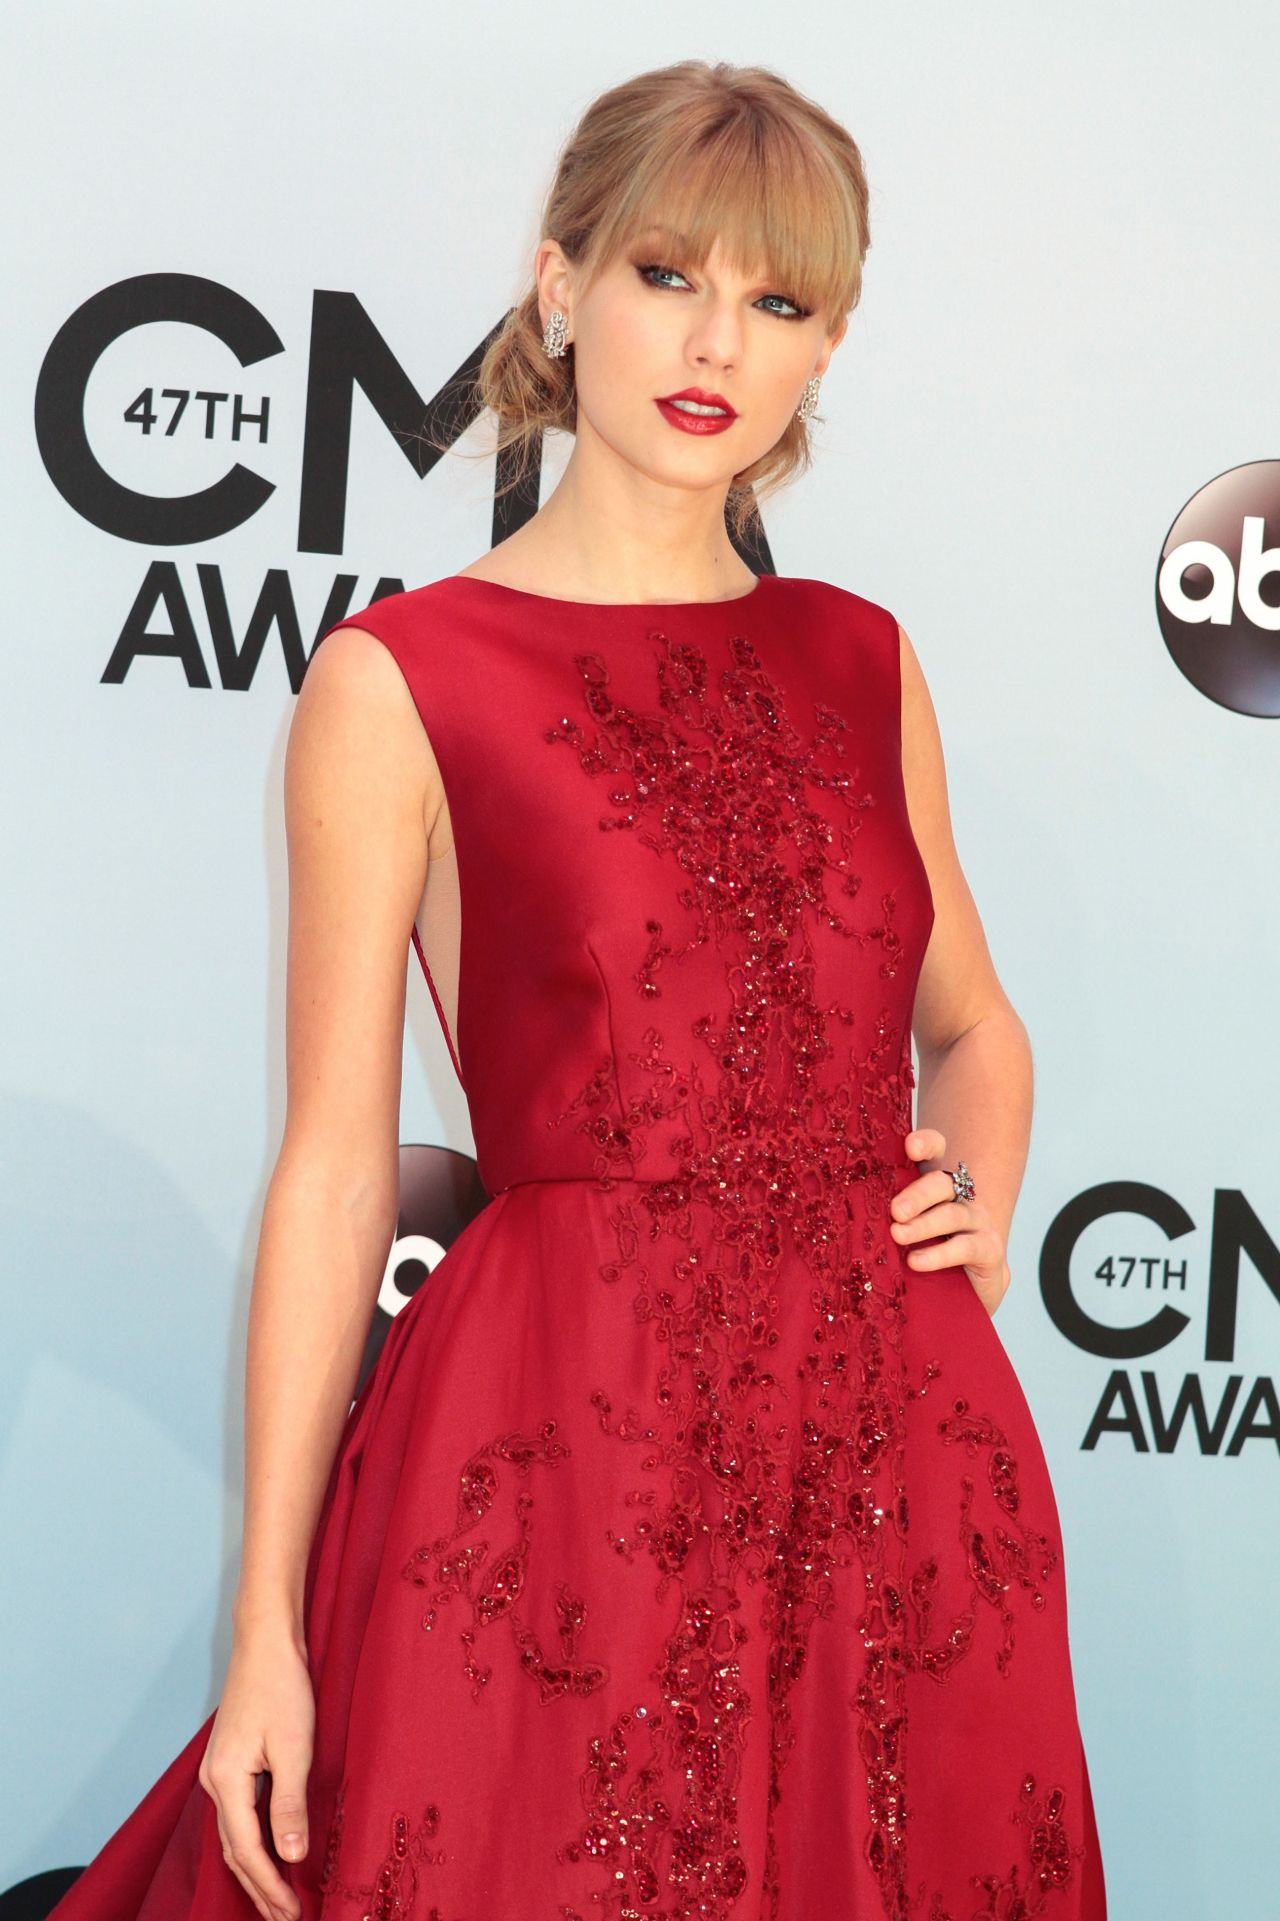 Taylor Swift in Red on Red Carpet - 47th Annual CMA Awards ...